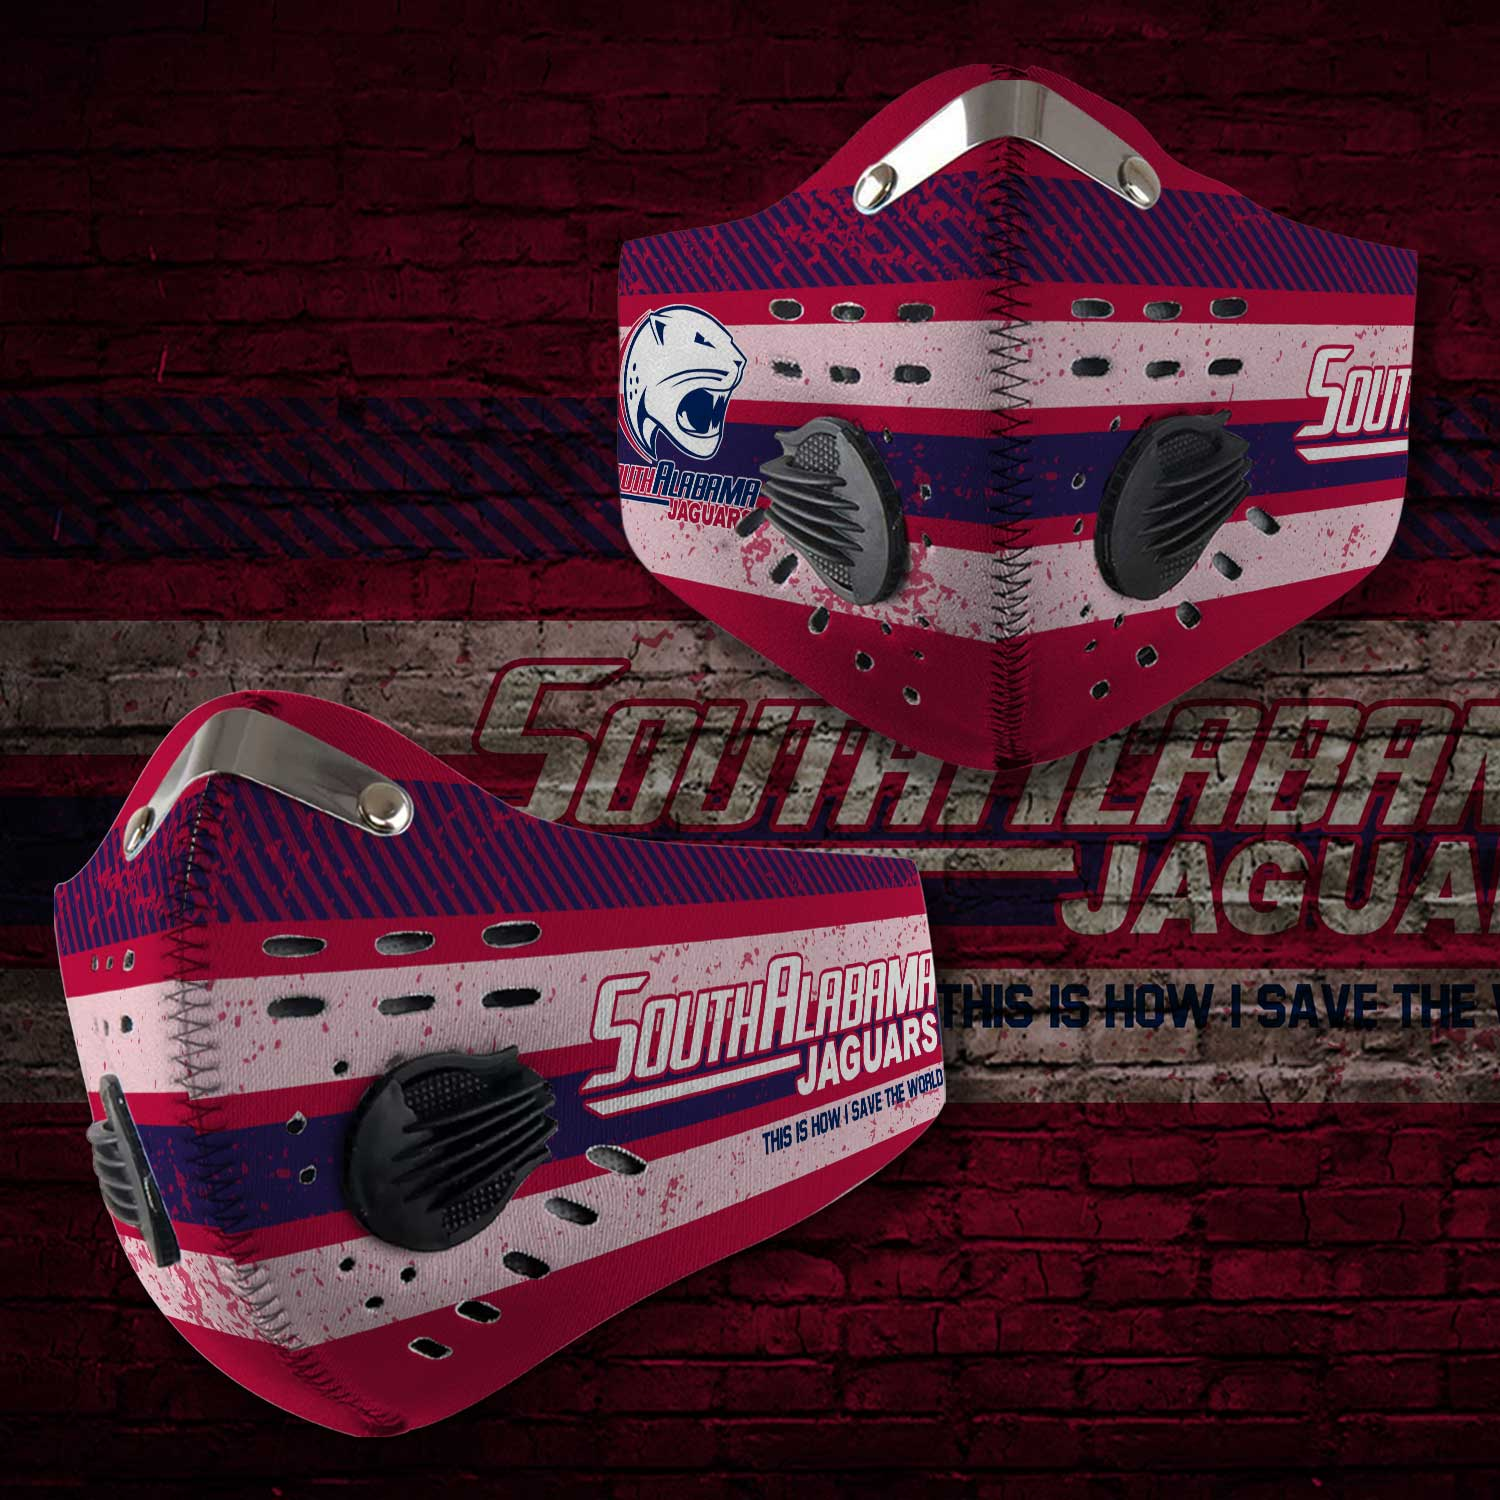 South alabama jaguars this is how i save the world face mask 1